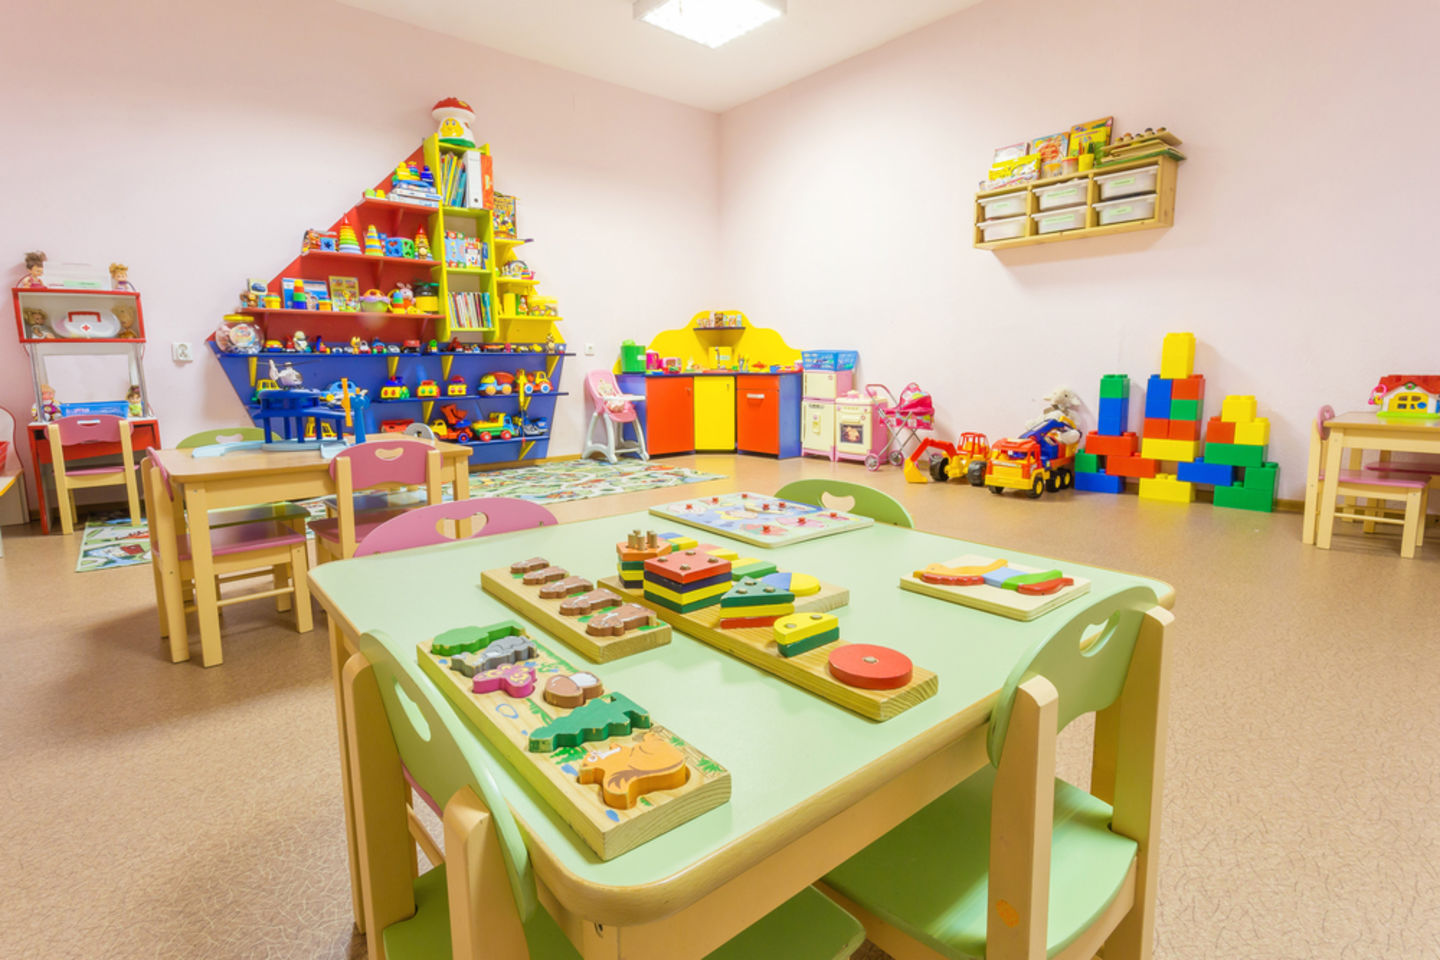 HiDubai-business-cherry-town-nursery-education-daycare-centres-playschools-al-barsha-1-dubai-2